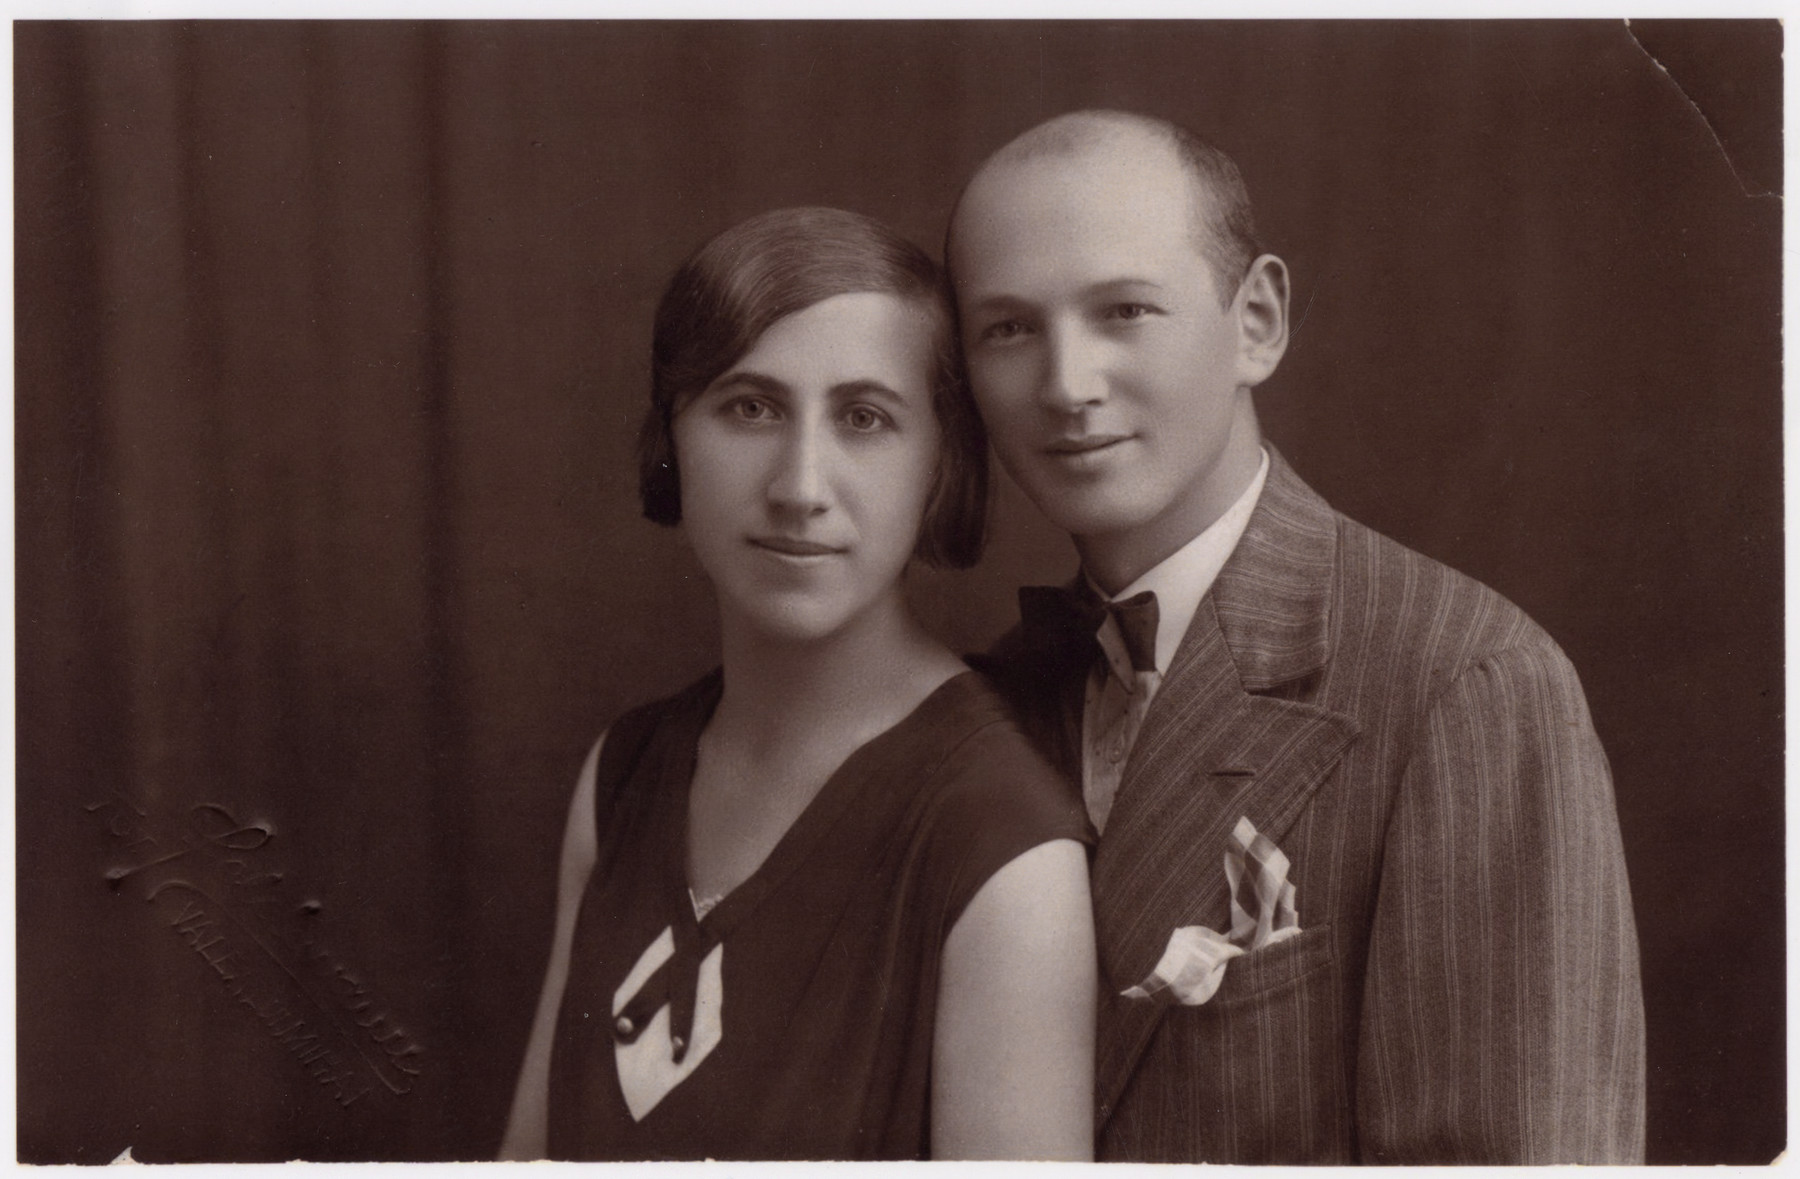 Portrait of Ilonka and Marton Salamon on their second wedding anniversary.